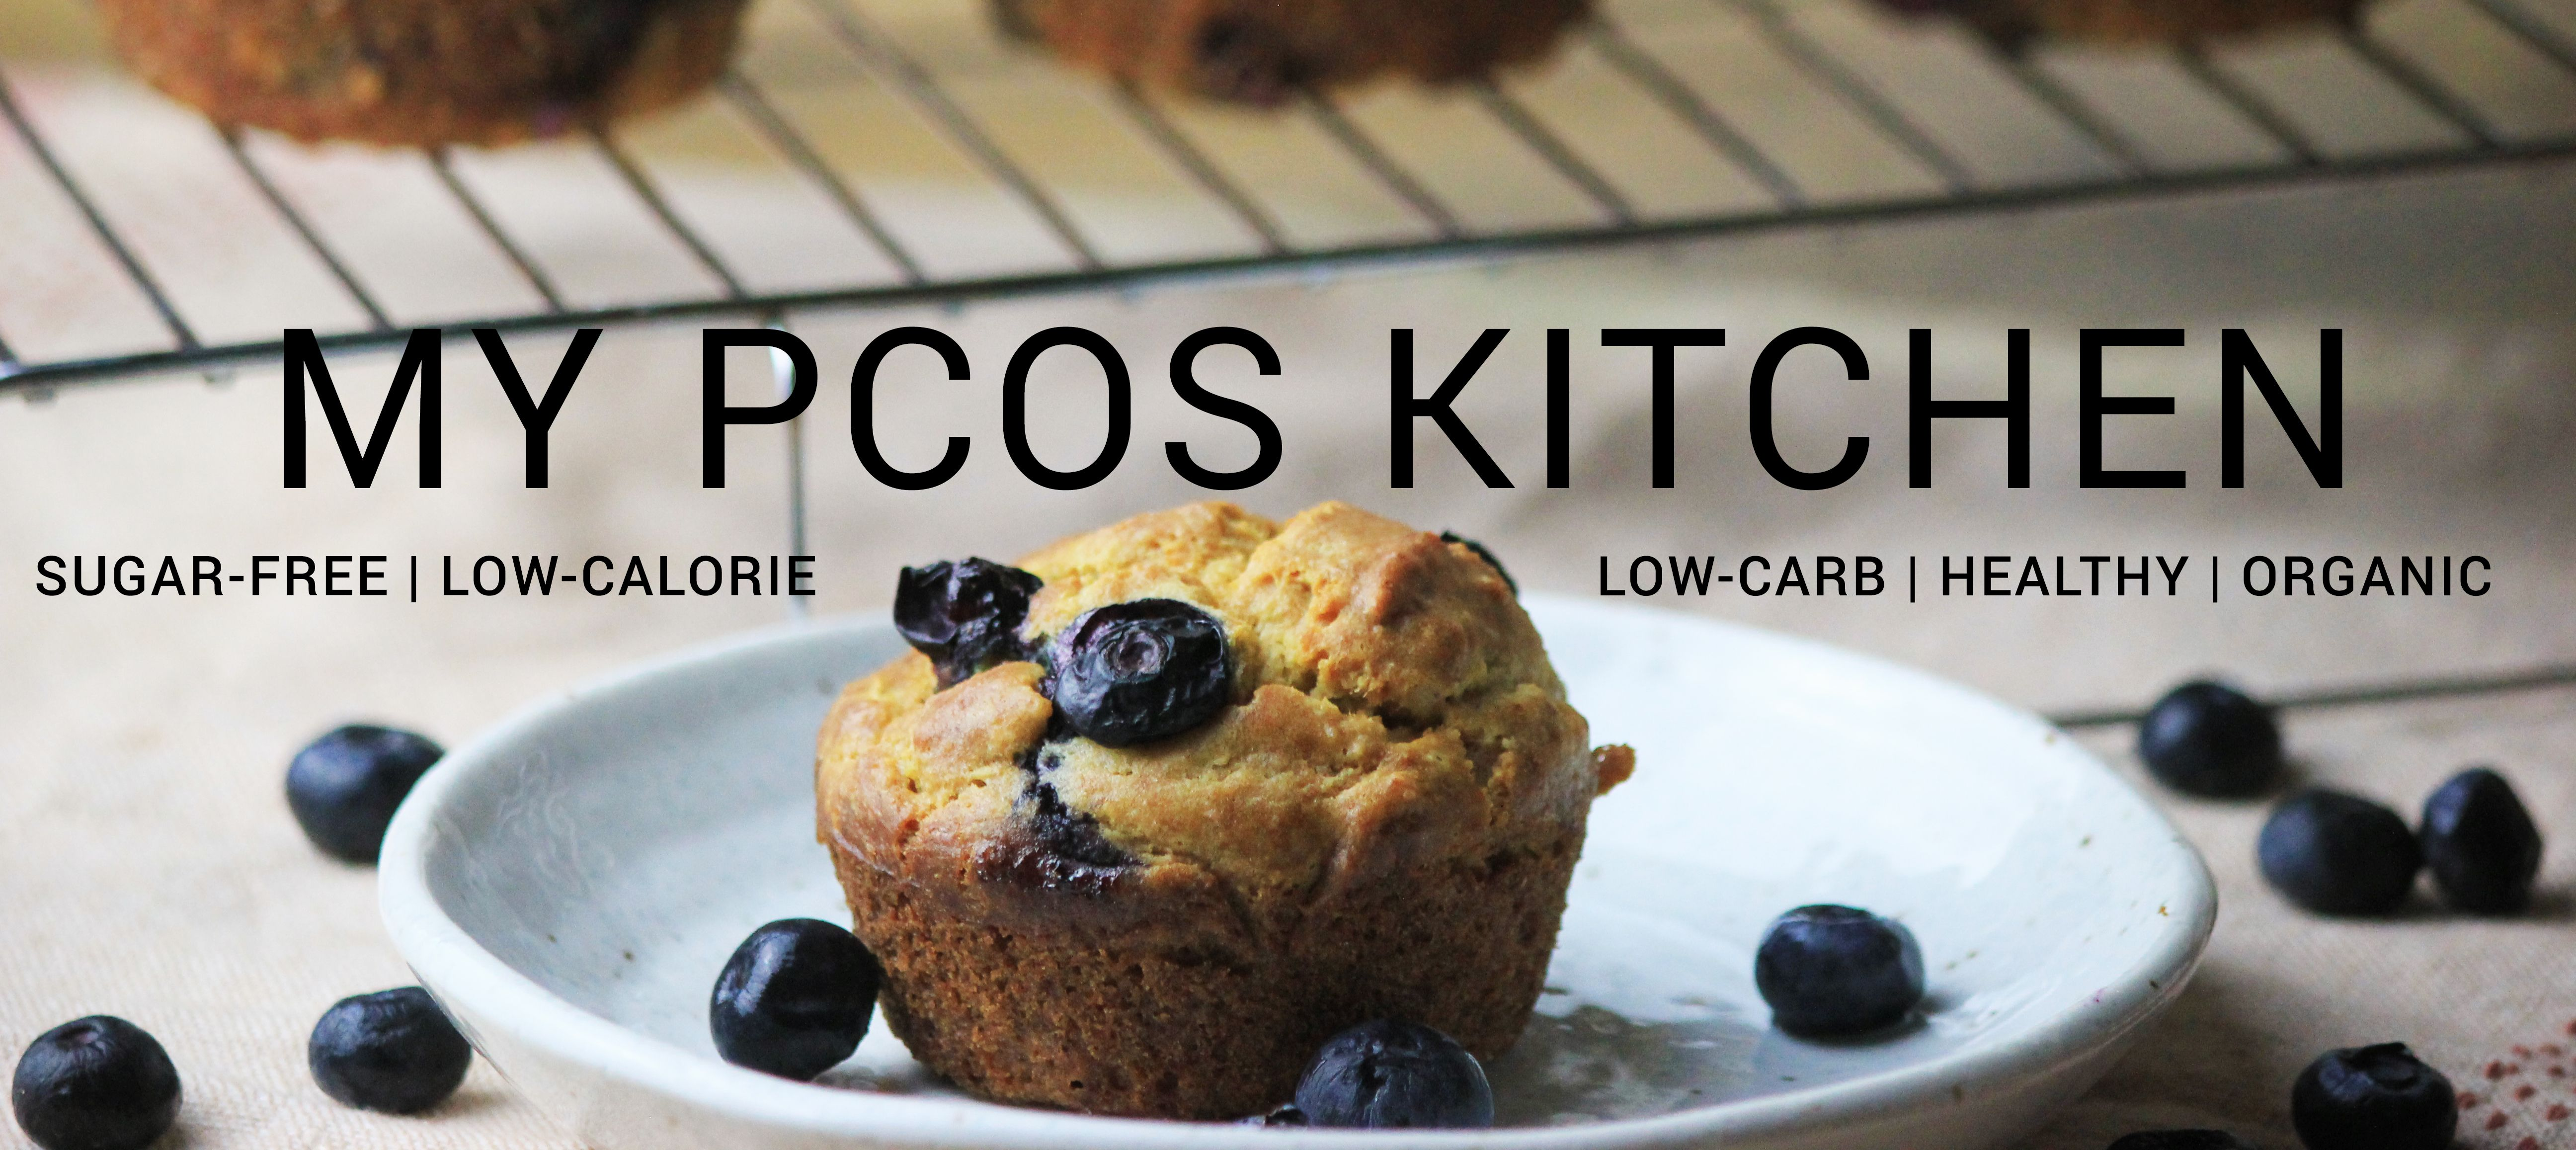 Low-carb Archives - My PCOS Kitchen